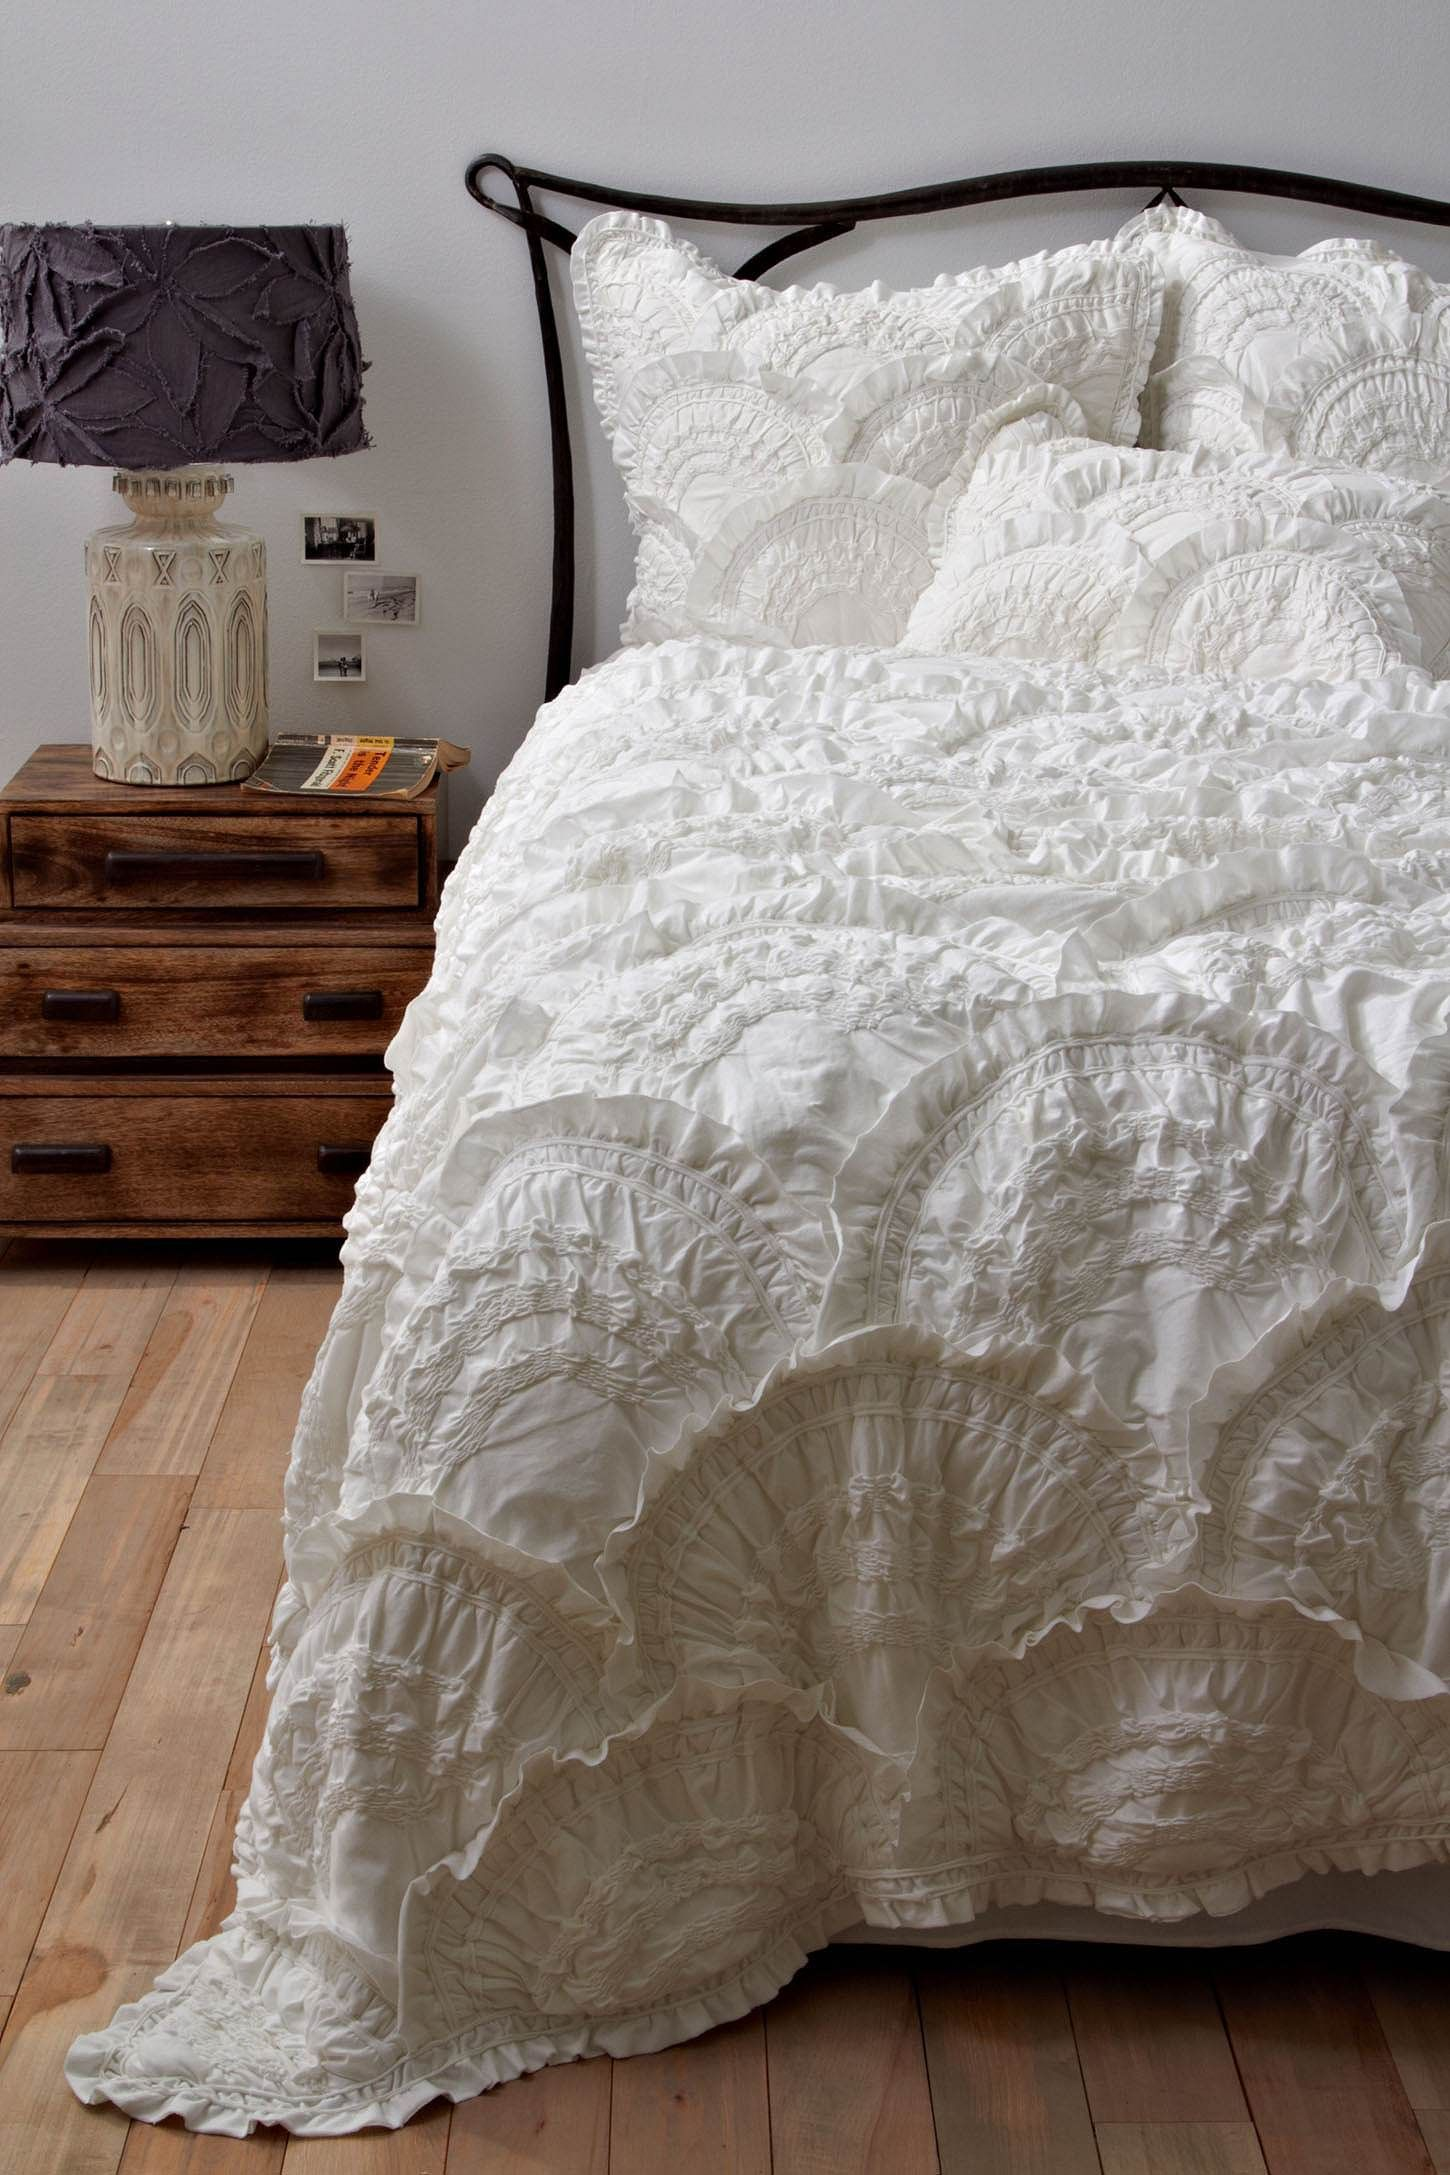 Bedding Mix And Match House & Home Anthropologie